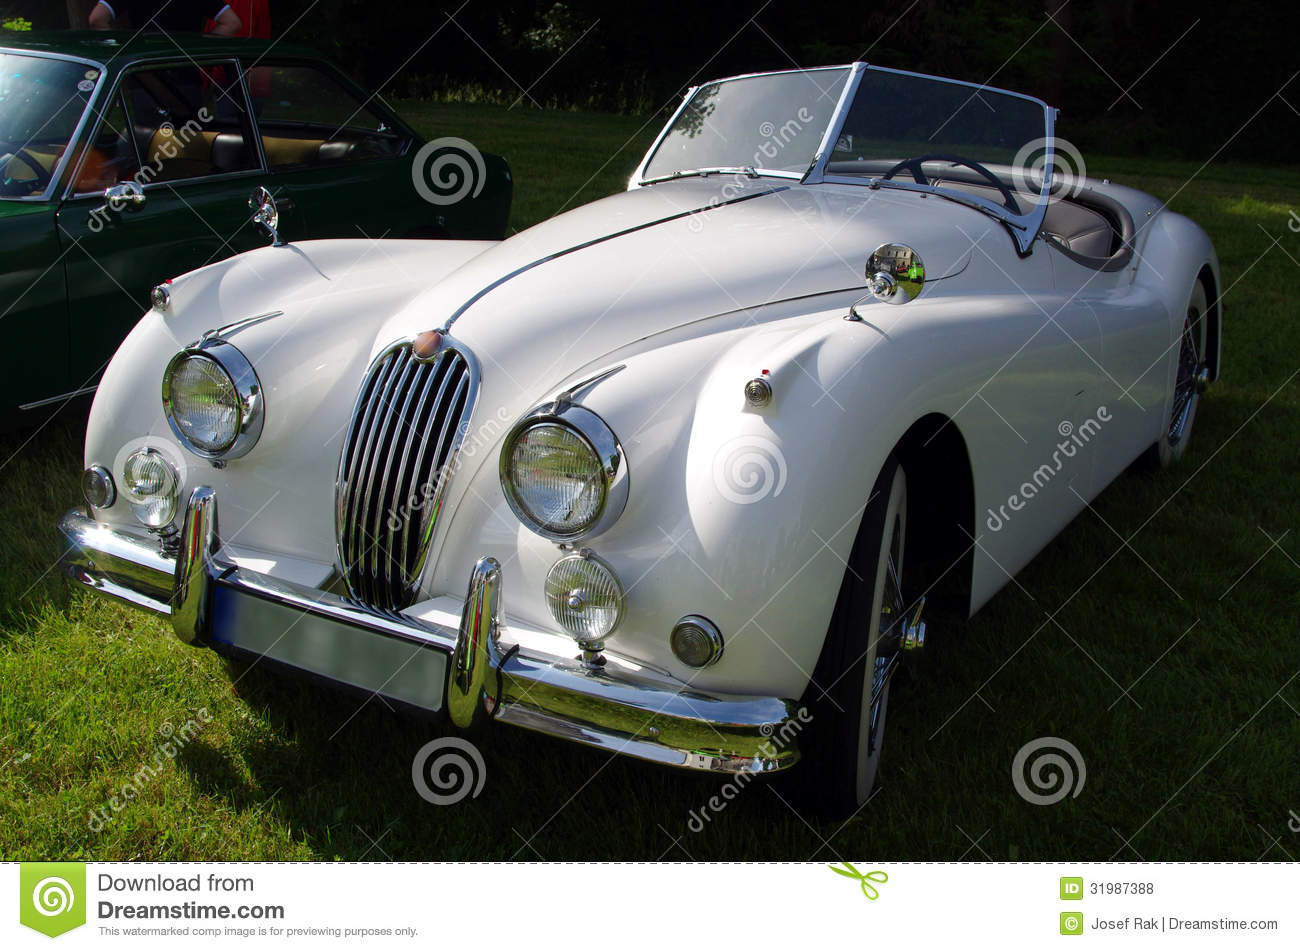 Antique car - Jaguar stock photo. Image of roadster, auto - 31987388